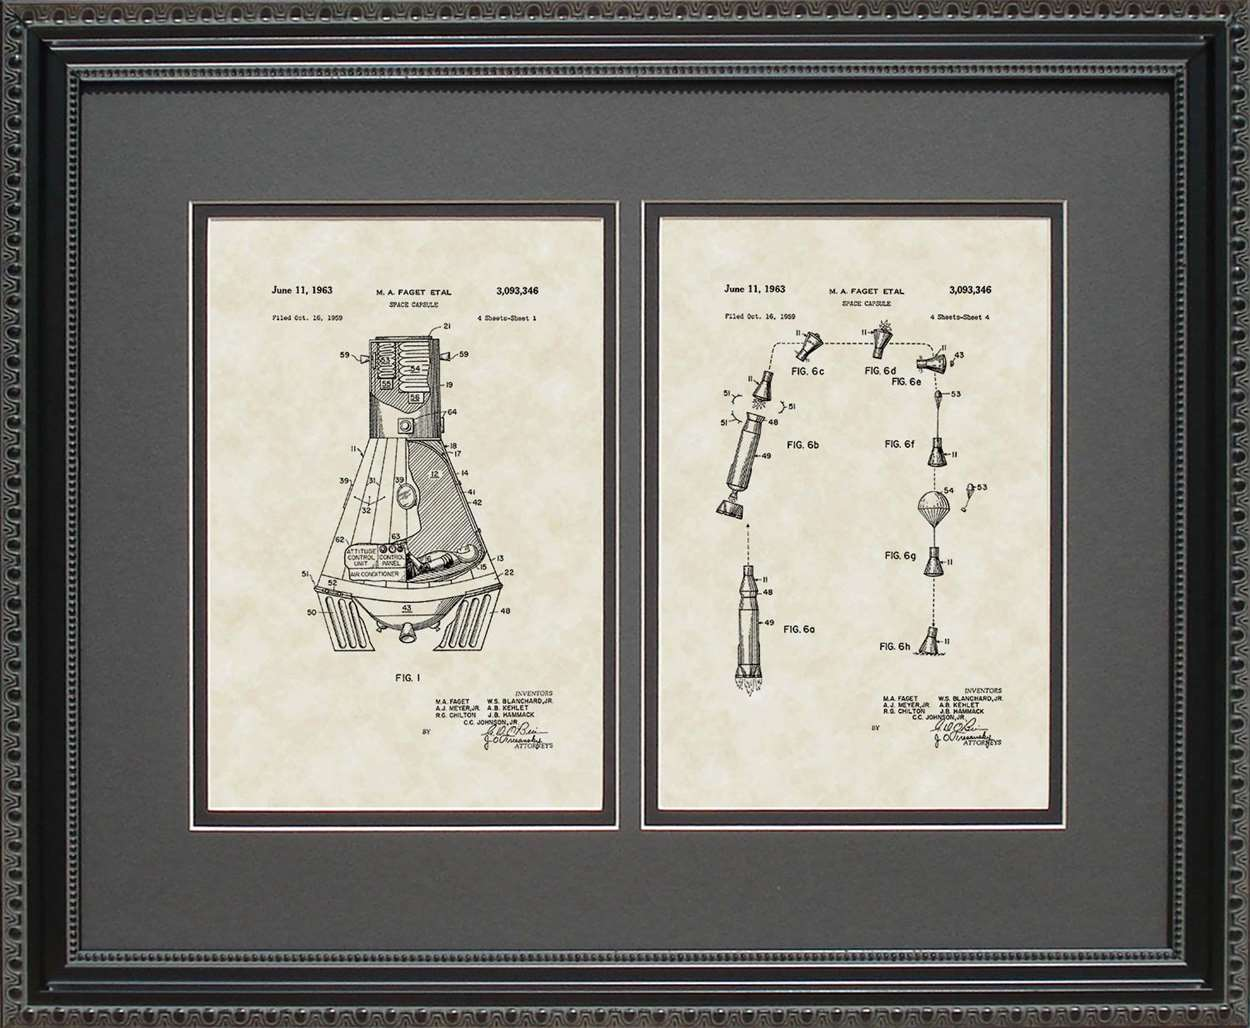 Space Capsule Patent, Art & Copy, Fagel, 1963, 16x20